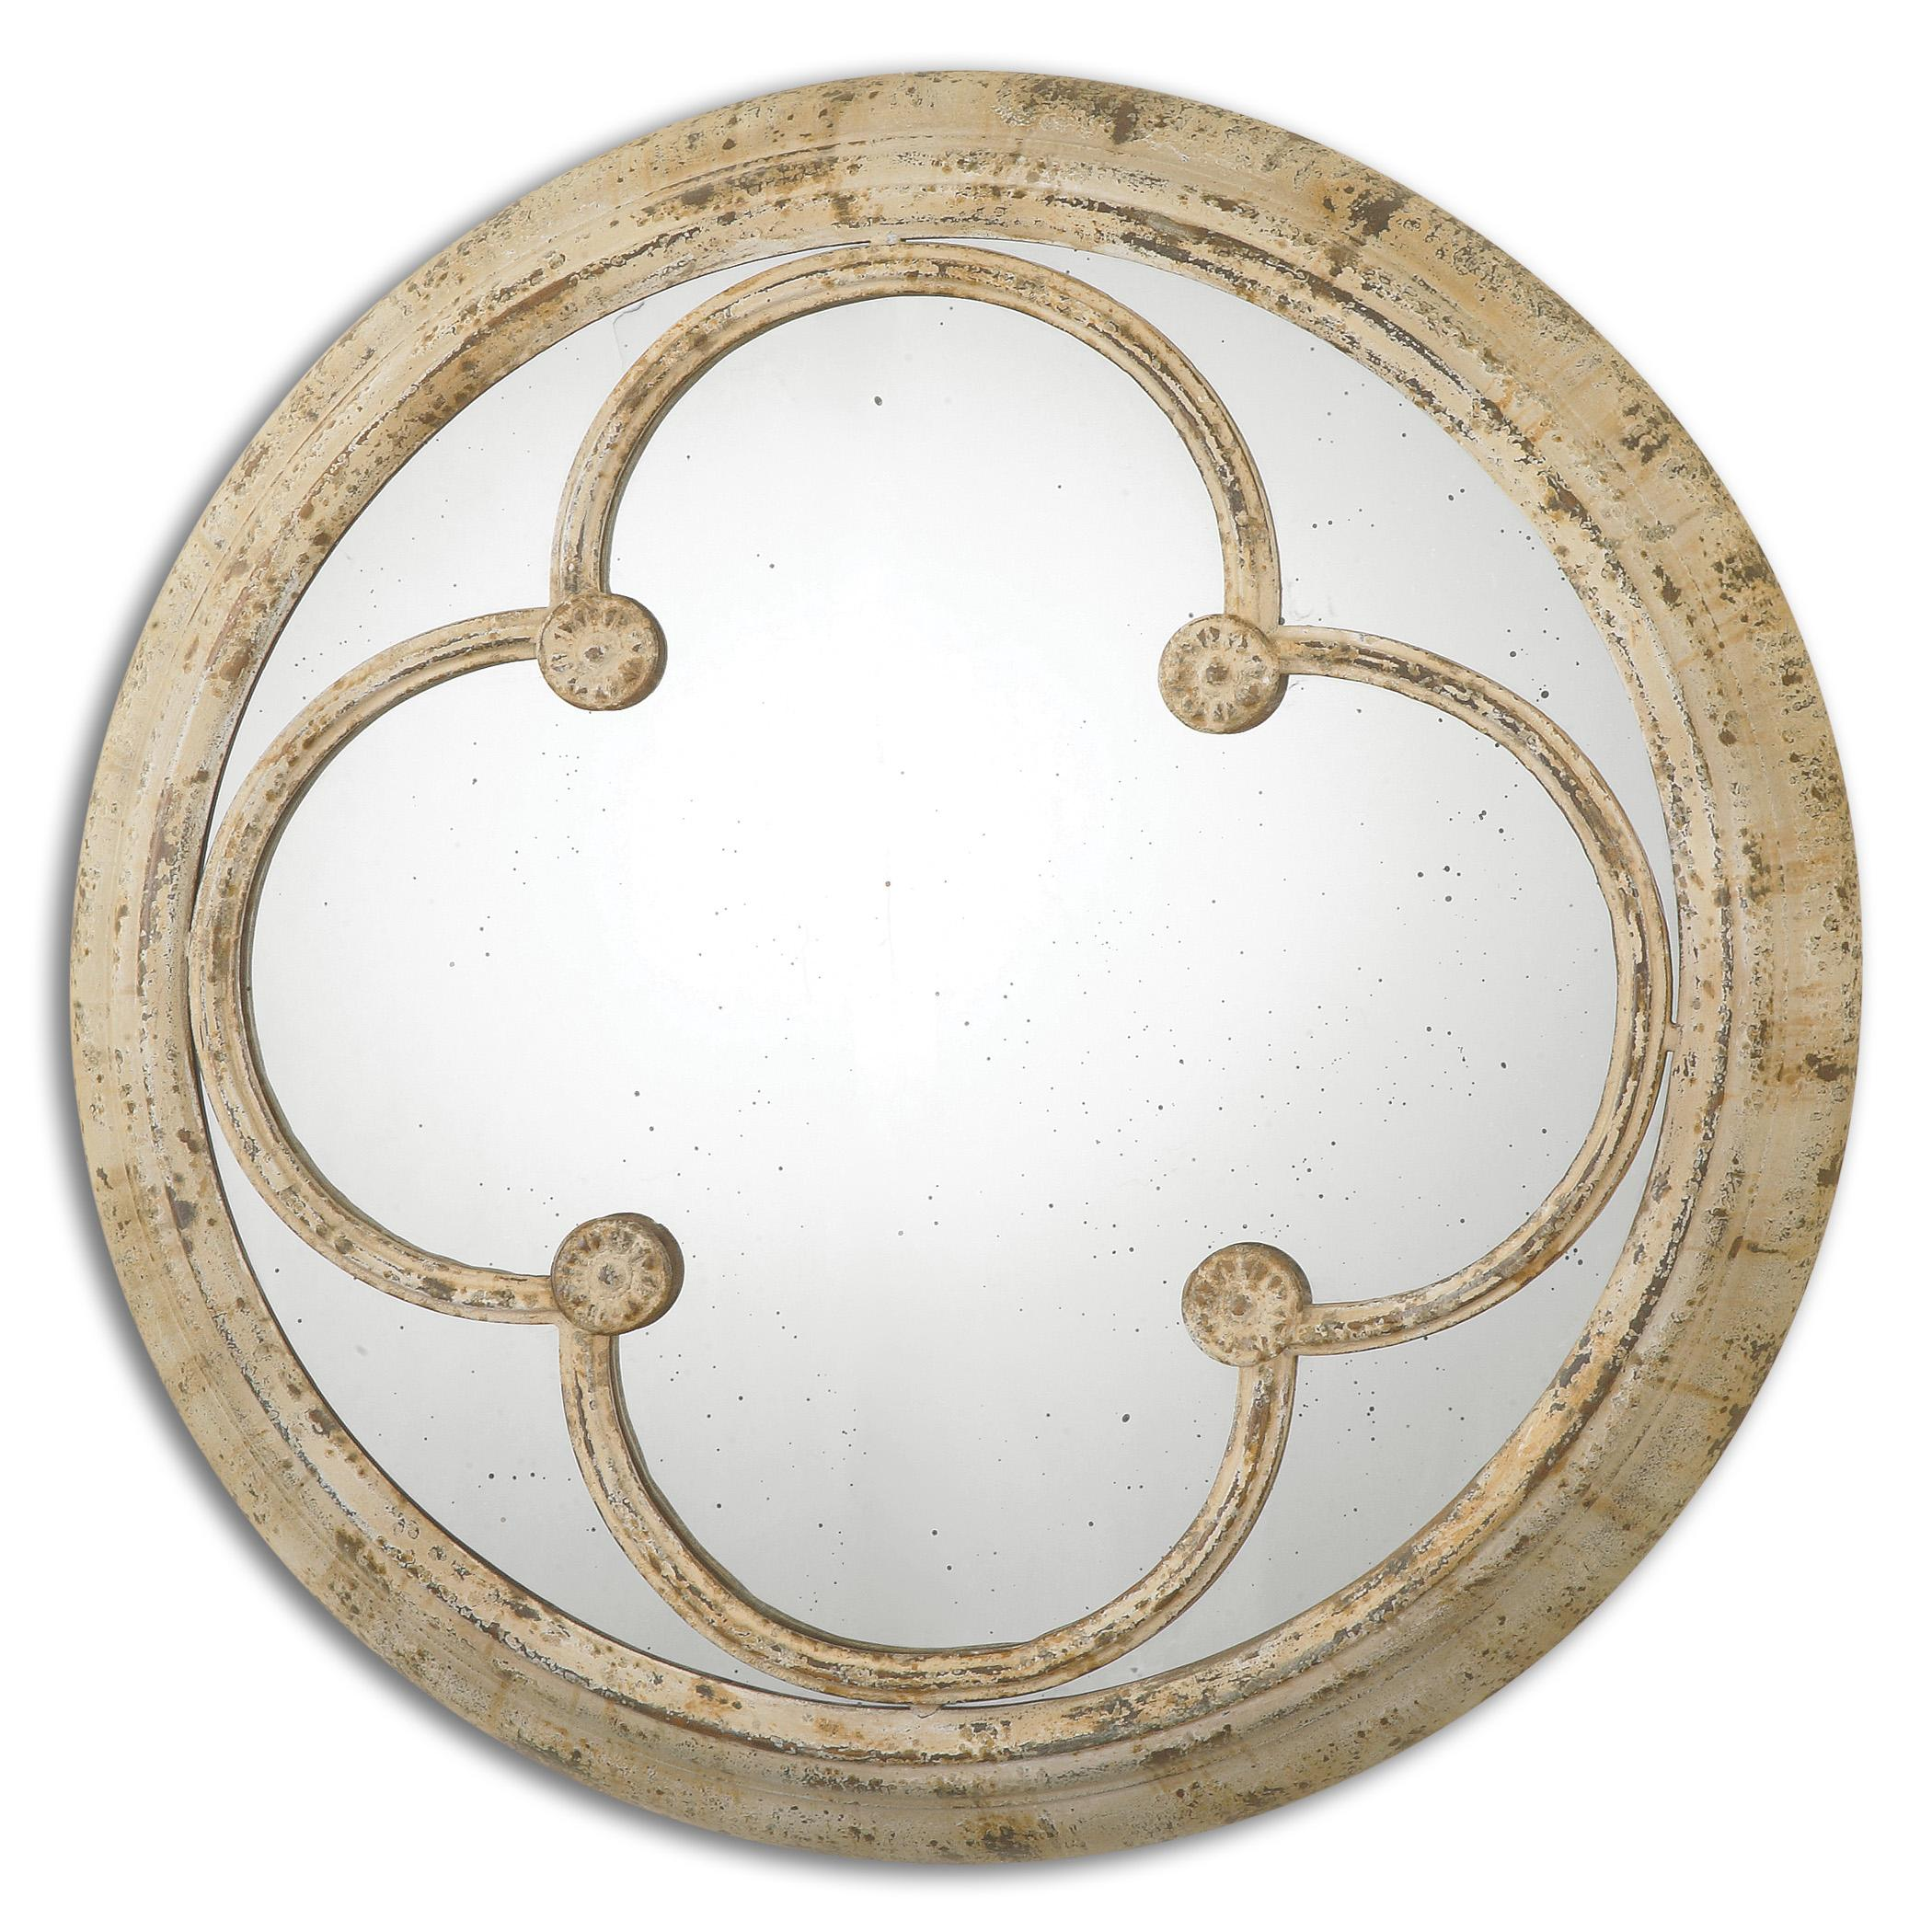 Uttermost Mirrors Livianus Round Metal Mirror - Item Number: 13884